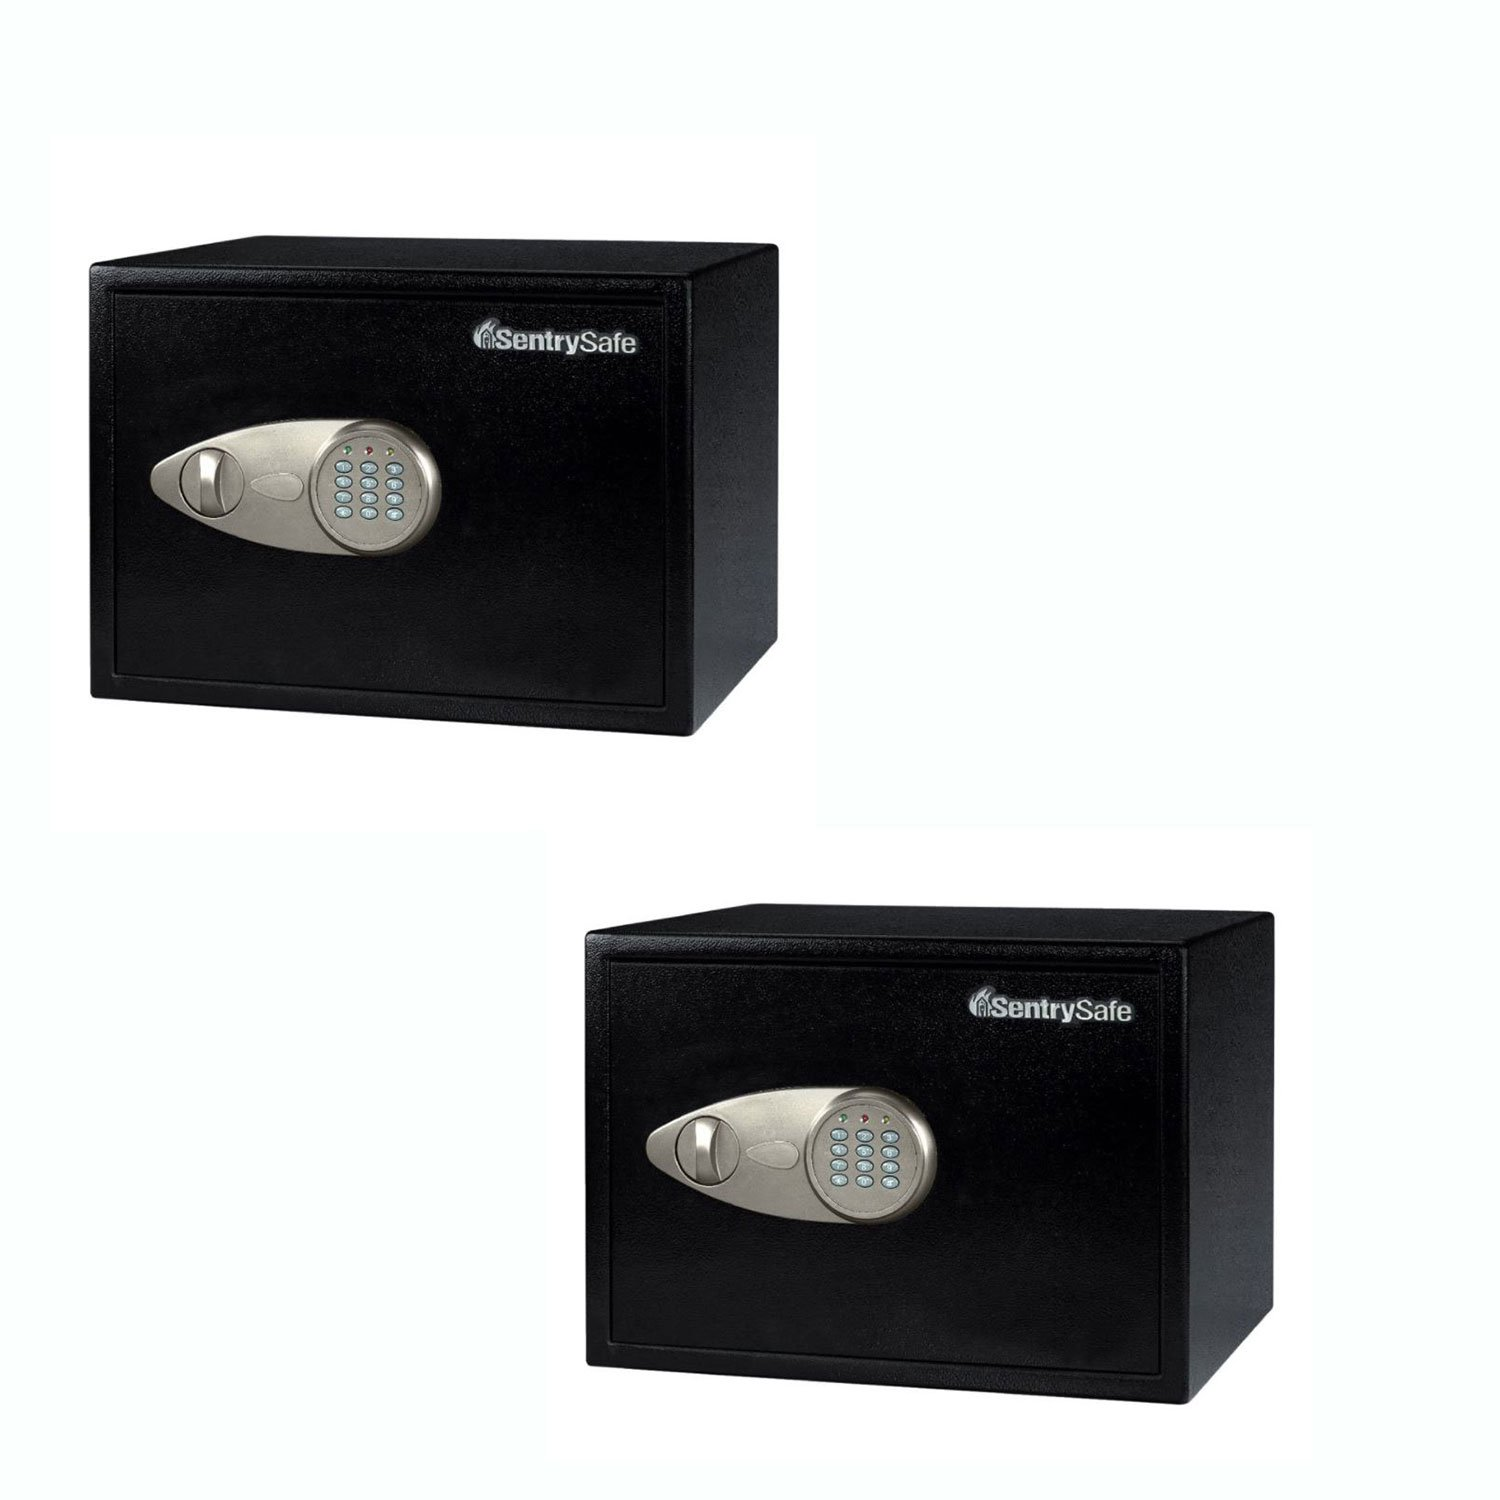 SentrySafe X125 Steel 1.2 Cu Ft Electronic Lock Home Security Safe (2 Pack)